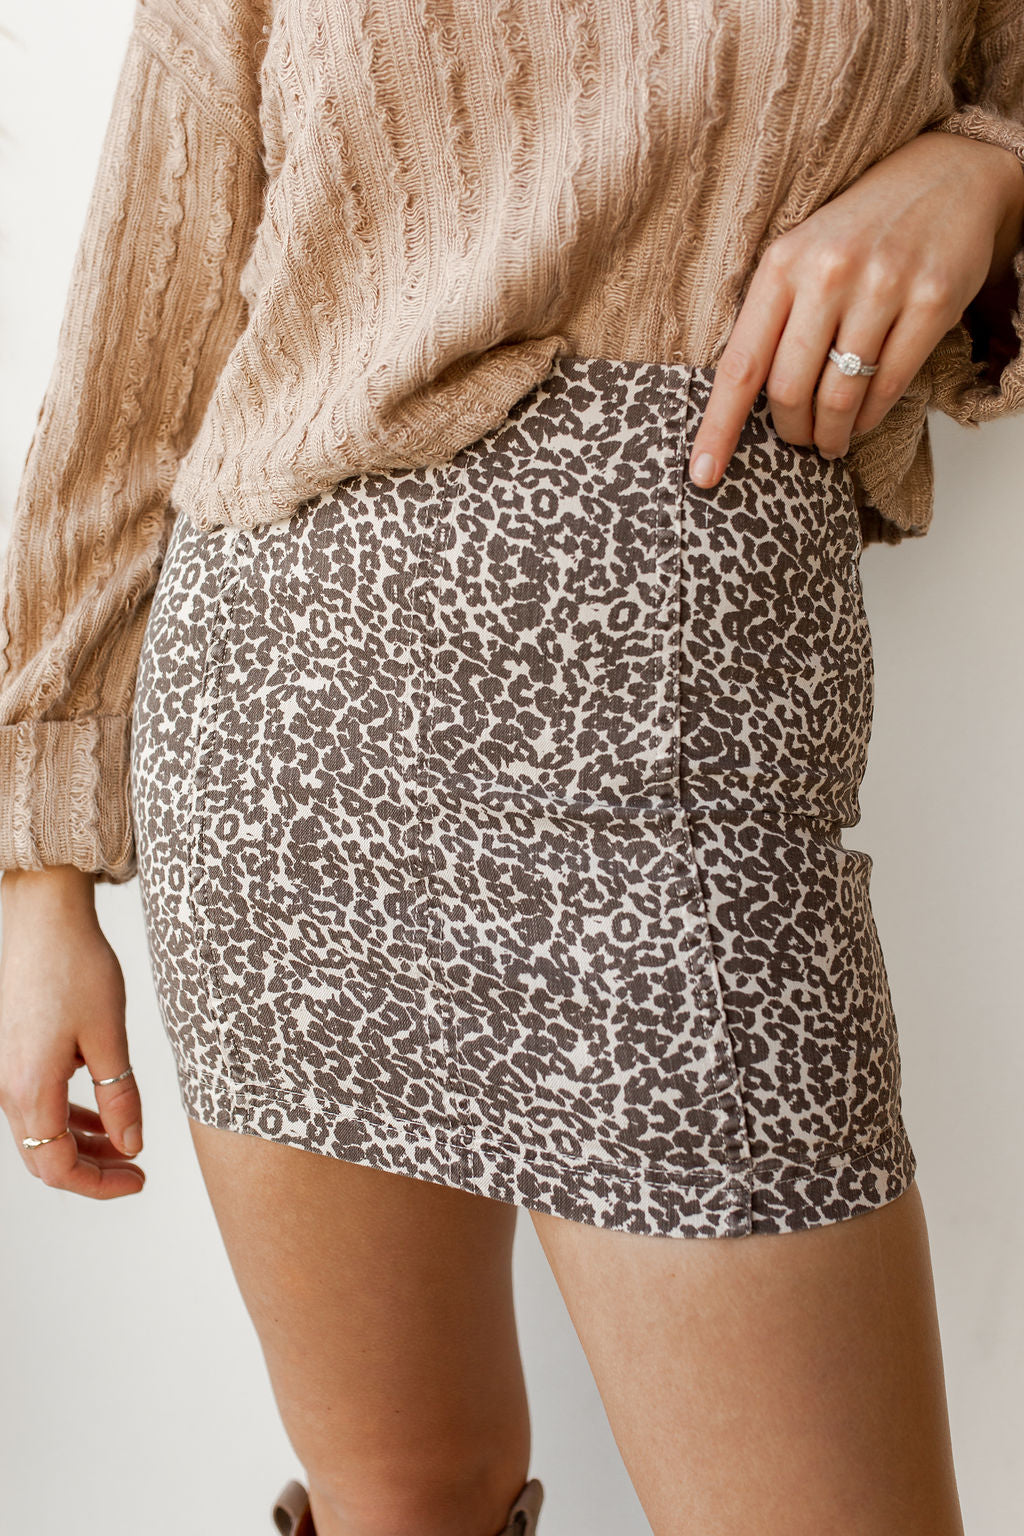 mode, modern femme novelty skirt